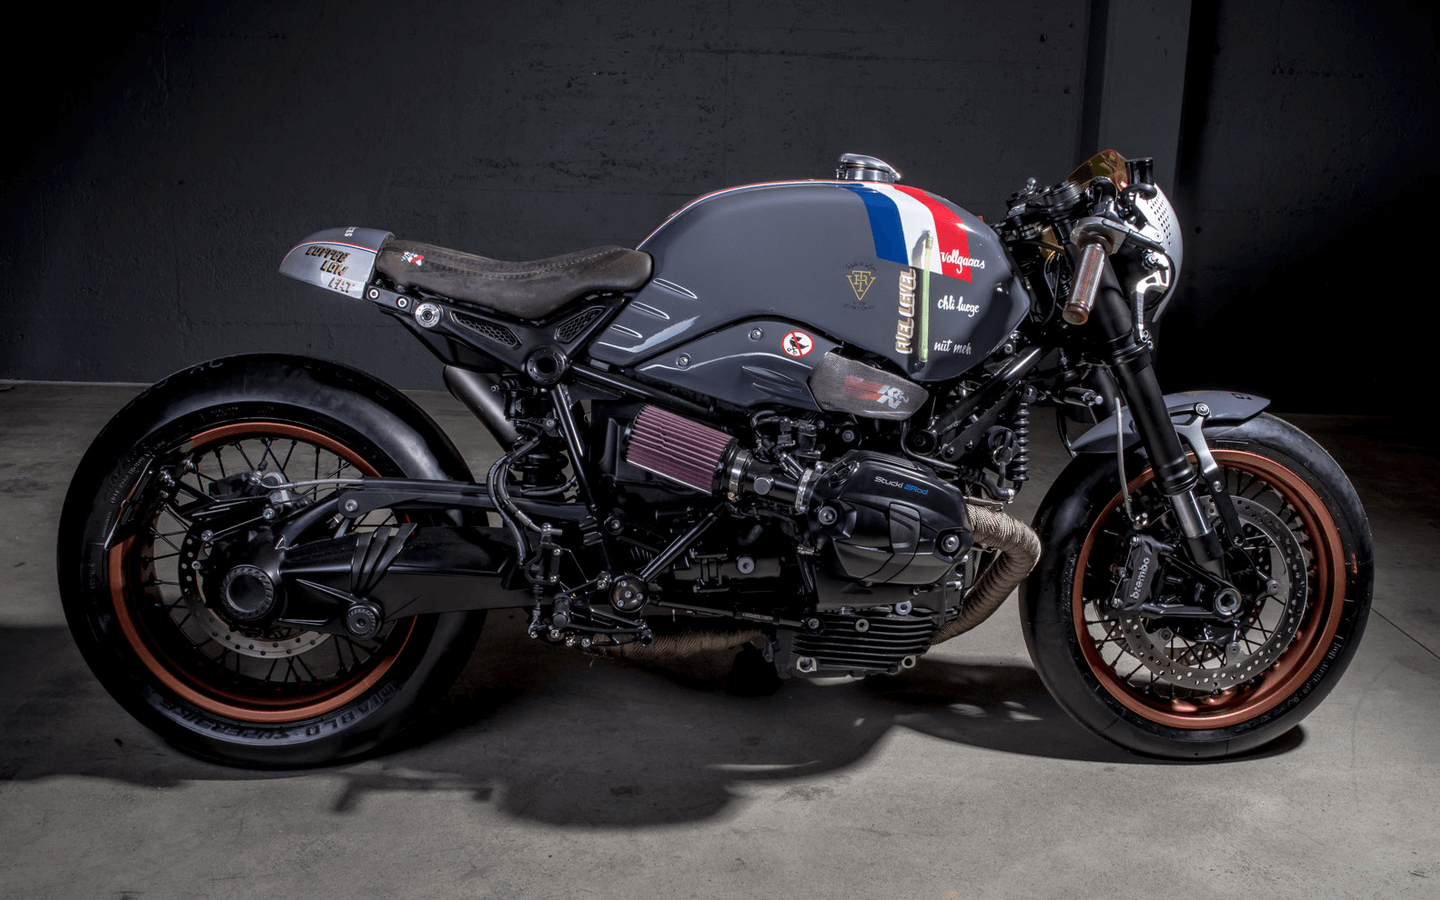 Bmw S1000rr For Sale >> BMW R NineT Custom by VTR Customs - BikeBrewers.com